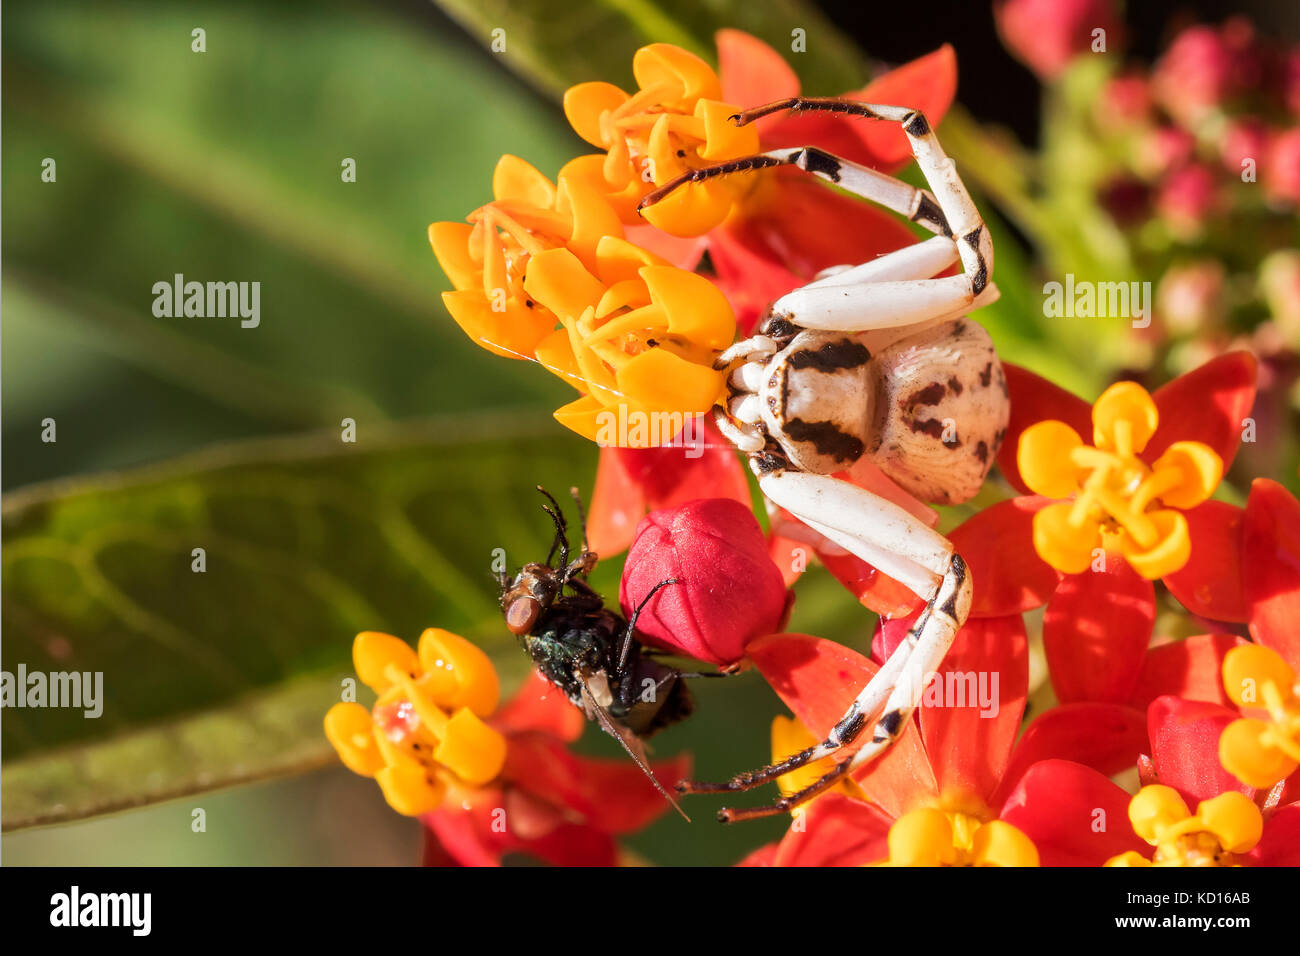 Crab spider catches fly, grabs it and stings then eats - Stock Image